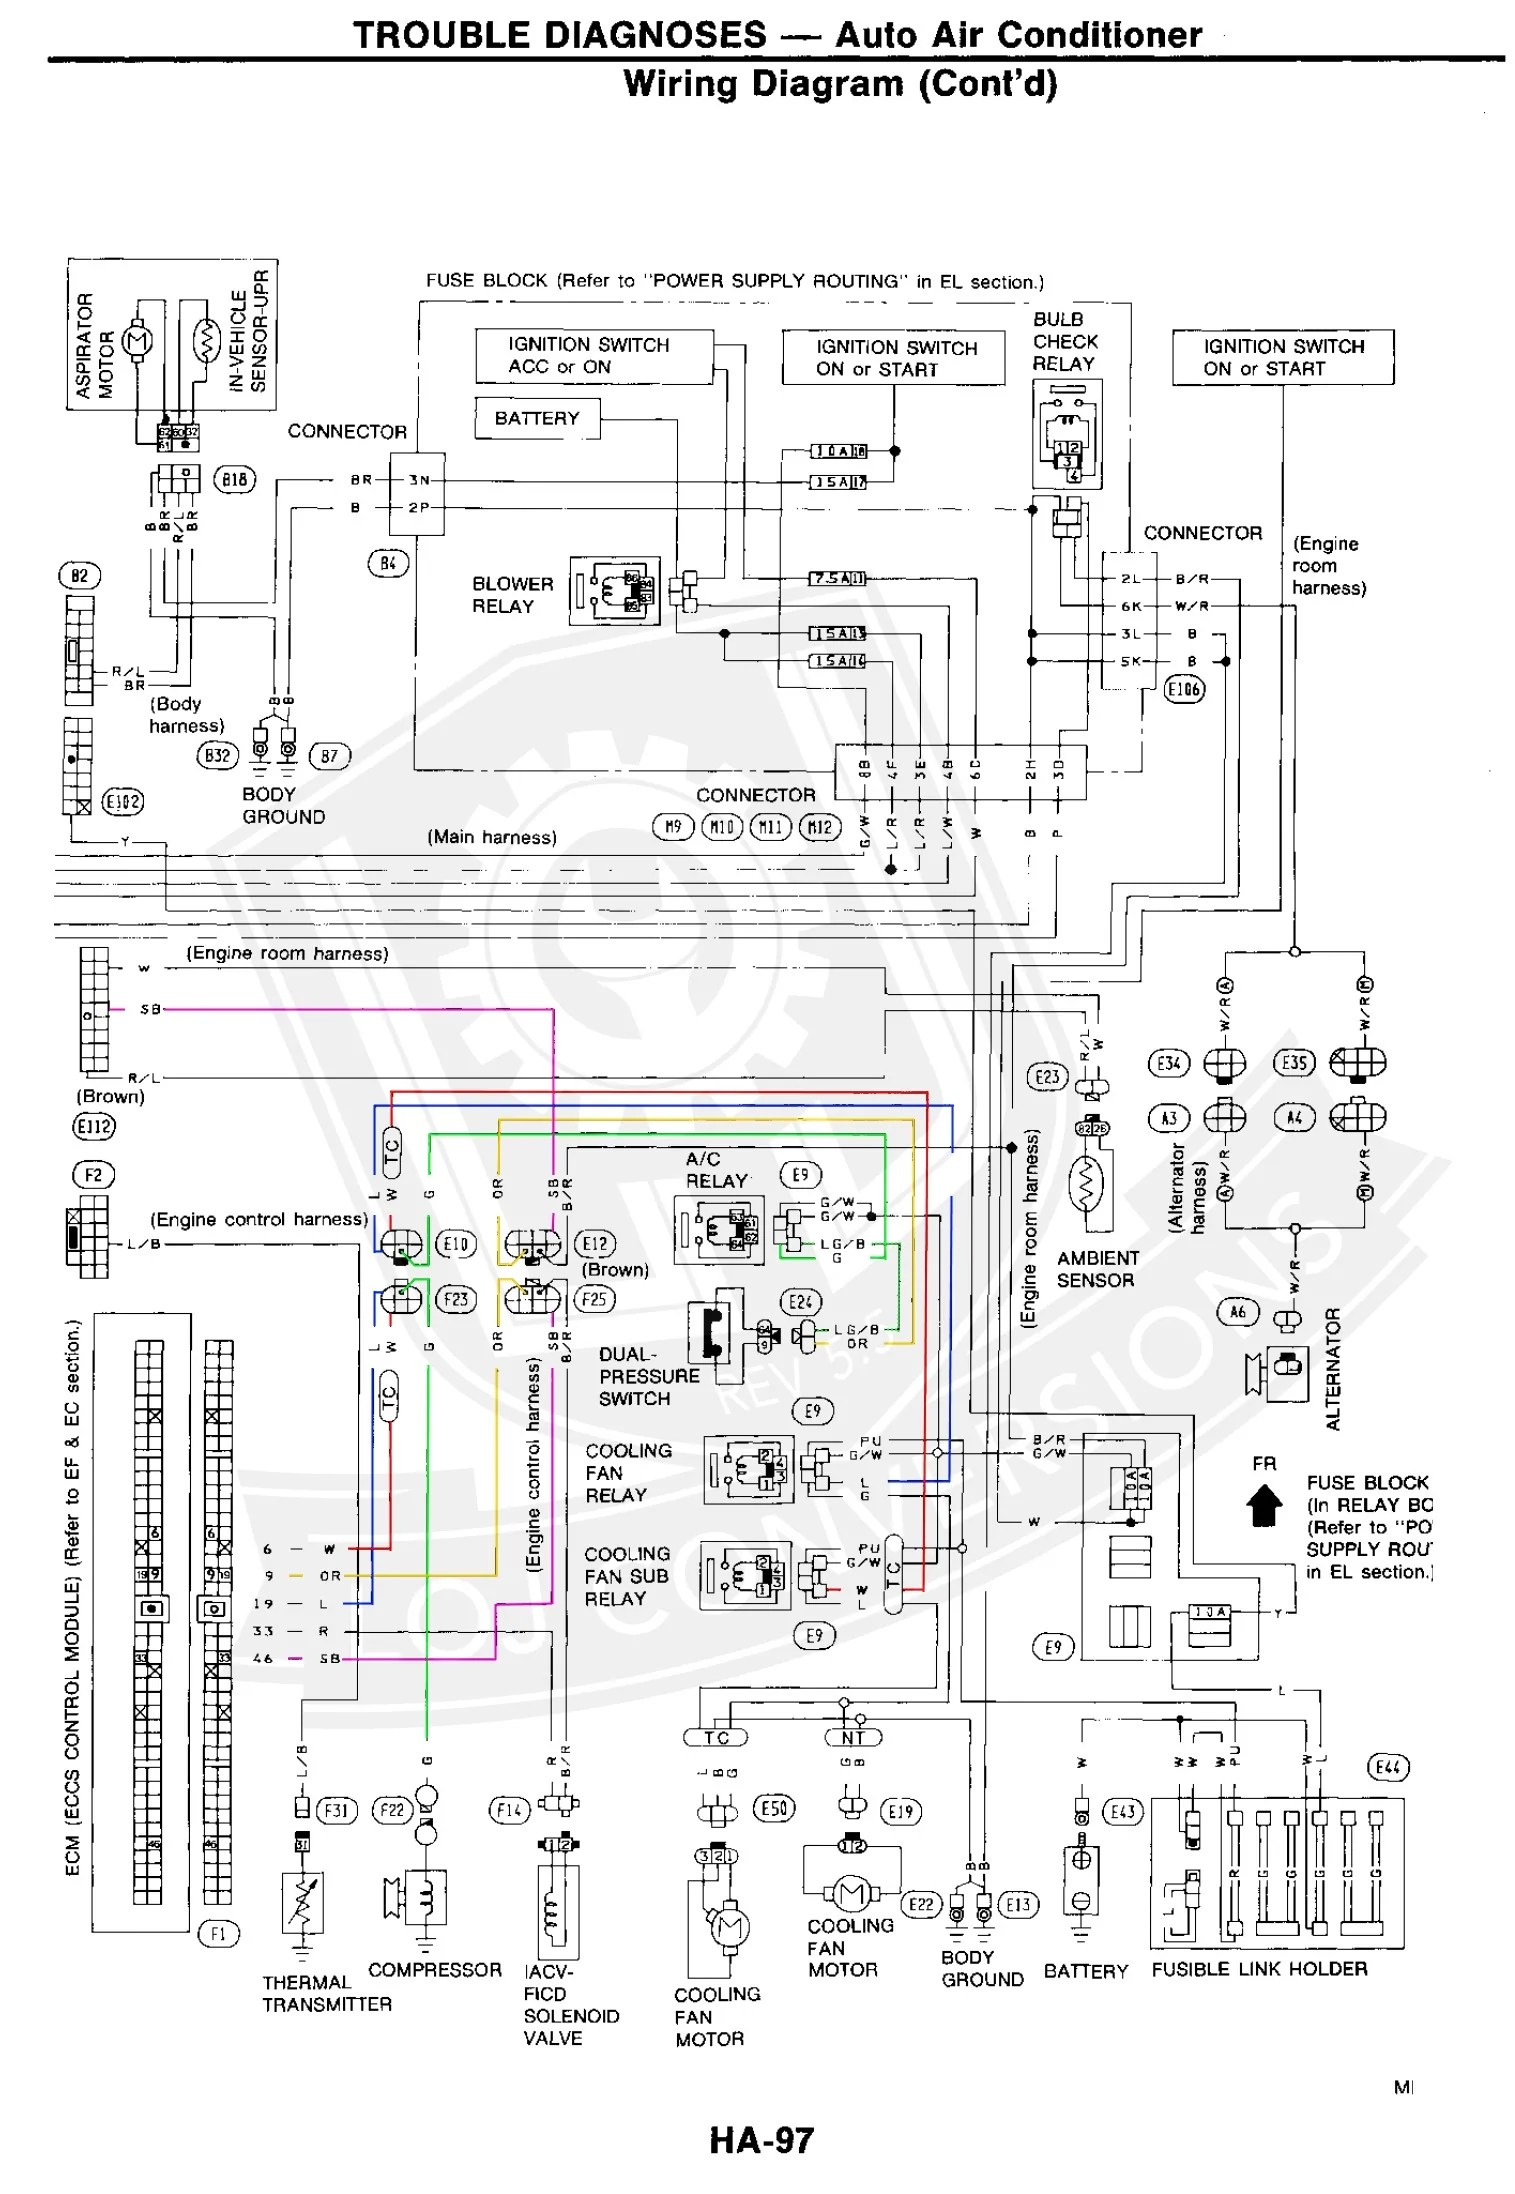 hight resolution of 91 na 300zx fuse box wiring diagram expert 1990 nissan 300zx fuse panel diagram wiring schematic